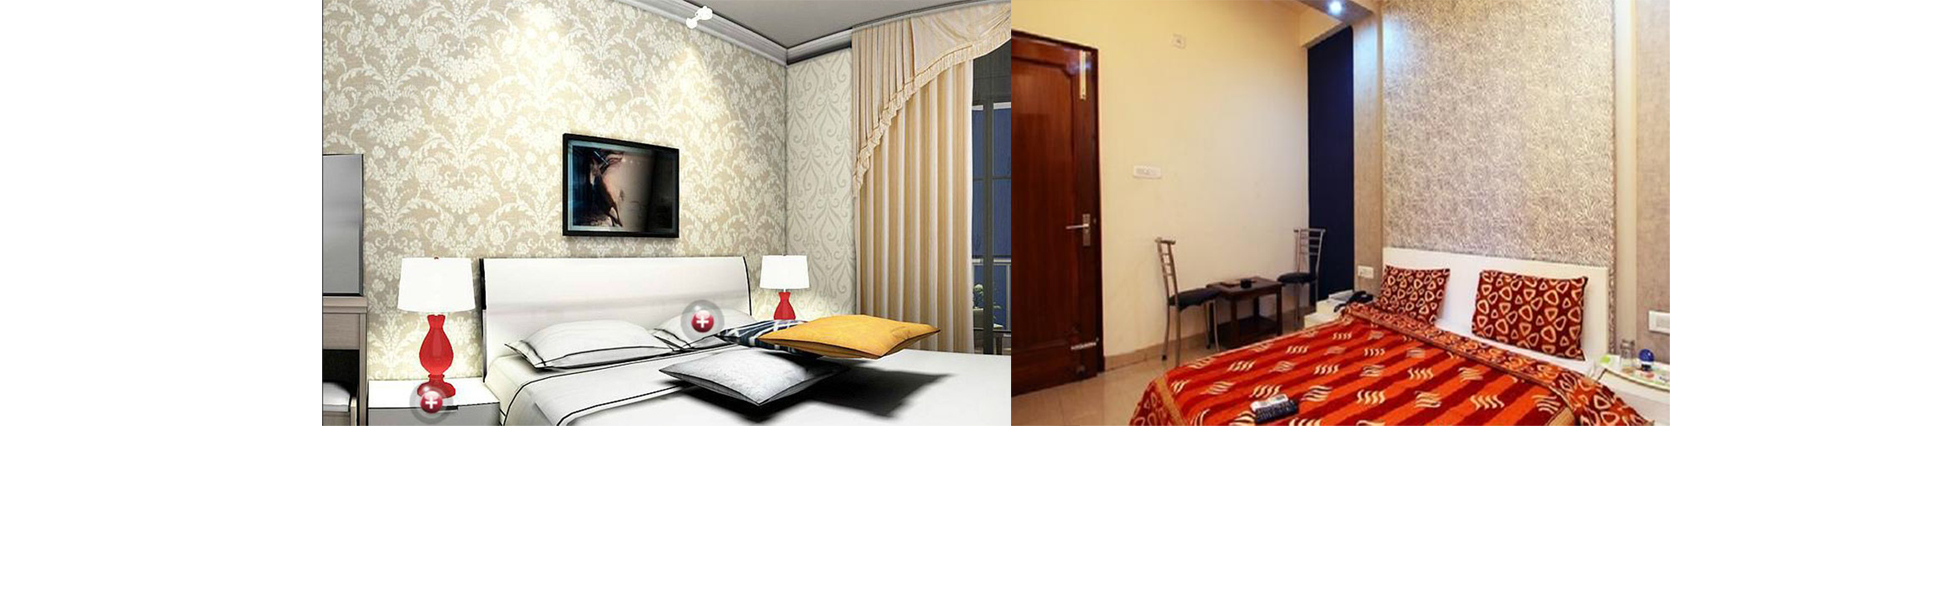 Best  Hotels  Tariff 2000 To 3000  RS MP Nagar in Bhopal | hotels near habibganj station bhopal | Hotels with good Tariff service Near Habibganj Station in Bhopal | List of Budget Hotels in Bhopal Near MP nagar  | Hotels For Banquet Wedding Halls in Bhopal Near Sargam Talkies | Address And Contact Detail of Best Hotels in Bhopal | Best  Hotels  Tariff in Bhopal MP nagar Zone 2 | Excellence hospitality service of Hotels in Bhopal | Address And Contact Detail of Best Hotels Near MP Nagar in Bhopal | hotels near db city mall bhopal | hotels in m p nagar bhopal - Hotel jayshree Palace - Bhopal - Madhyapradesh,India.